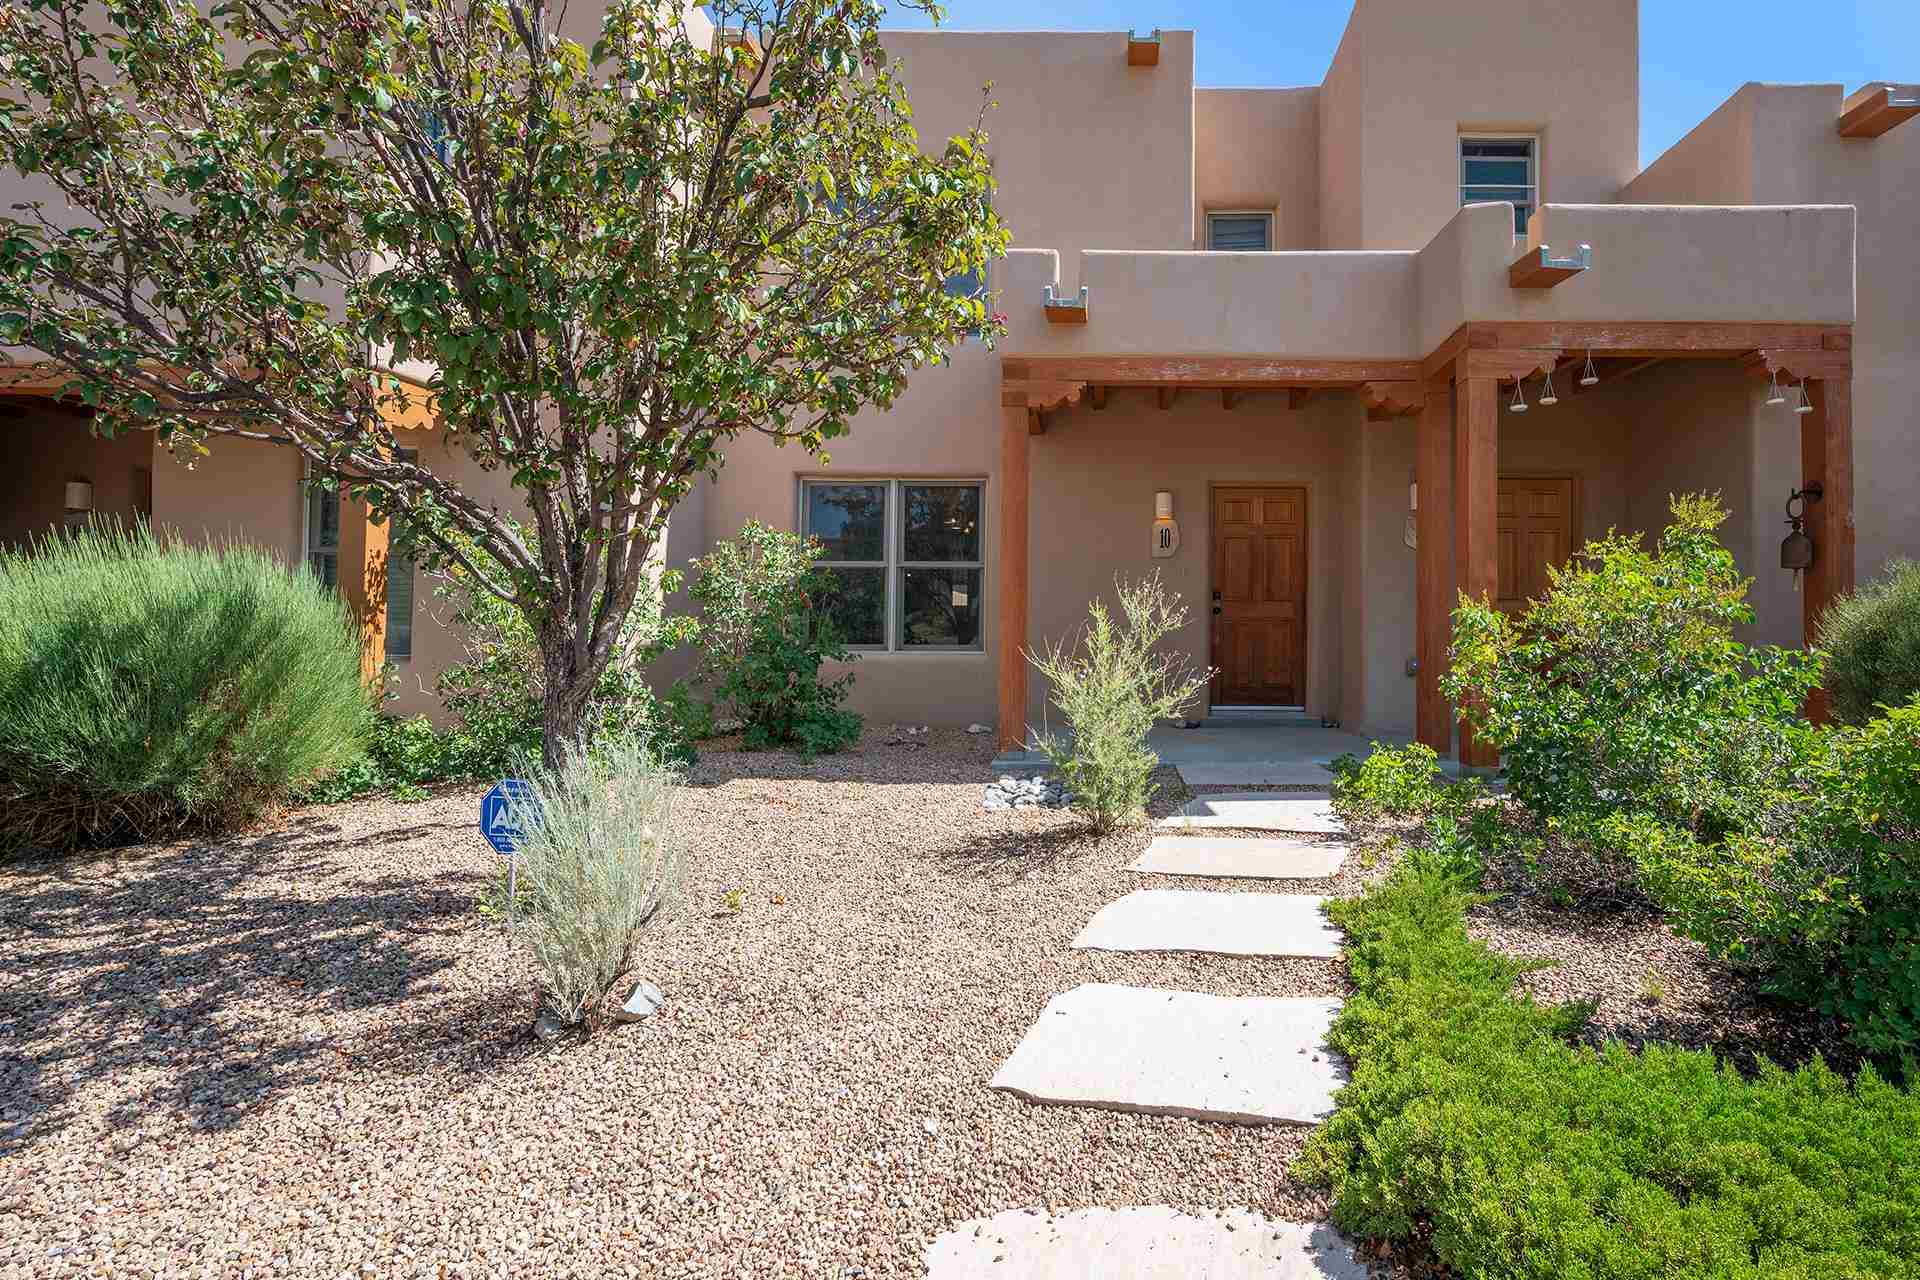 Cute light filled townhouse in sought after Aldea de Santa Fe. Built in 2004, 2 bedroom 1 full and 1 half bath, 1174 sf.  It is privately situated across the from the park and has an open floor plan. The sweet kitchen has the following upgraded appliances: Bosch Dishwasher and kitchen faucet, 2017 and a new garbage disposal, 2021. Additionally there us new stucco in 2019, new treks stairs leading from the courtyard to a private 2 car parking area, 2020; a new Washer Dryer 2019, and a roof refresh in 2019.   This is perfect investment property or starter home. Beautiful views of sunsets from the front upstairs bedroom. From the kitchen into the back yard is a private courtyard with a mature trees including an apple tree tree. This area is perfect for private outdoor dining. Aldea has high speed internet access, 13 miles of walking trails, tennis, pickle ball and basketball court. On the plaza is the community center that  you get free use of for your events. Here, you will also find a coffee shop and Dr's office.